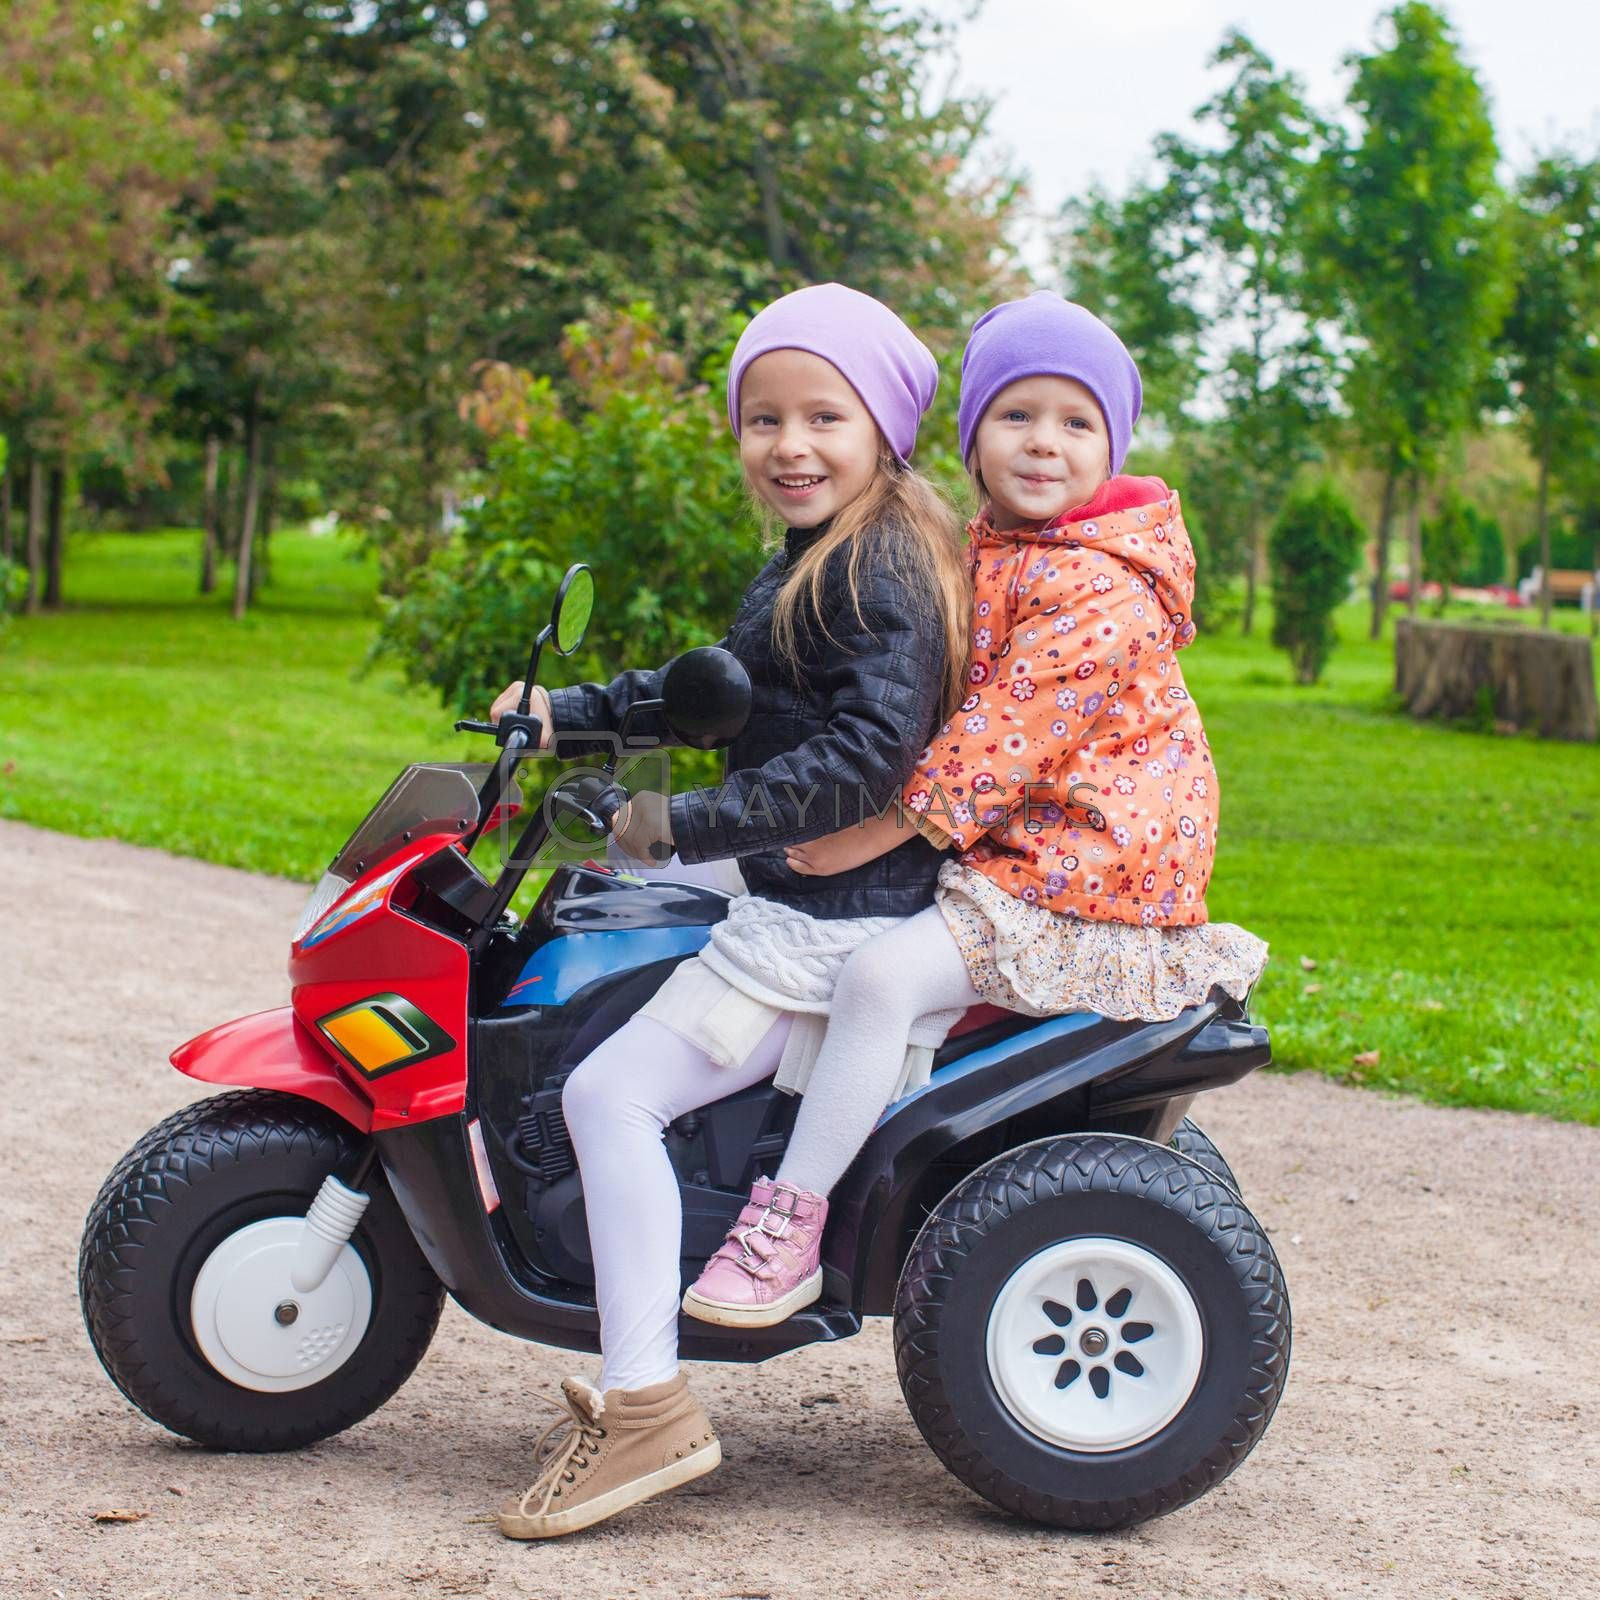 Two Little beautiful sisters sitting on toy motorcycle in green park